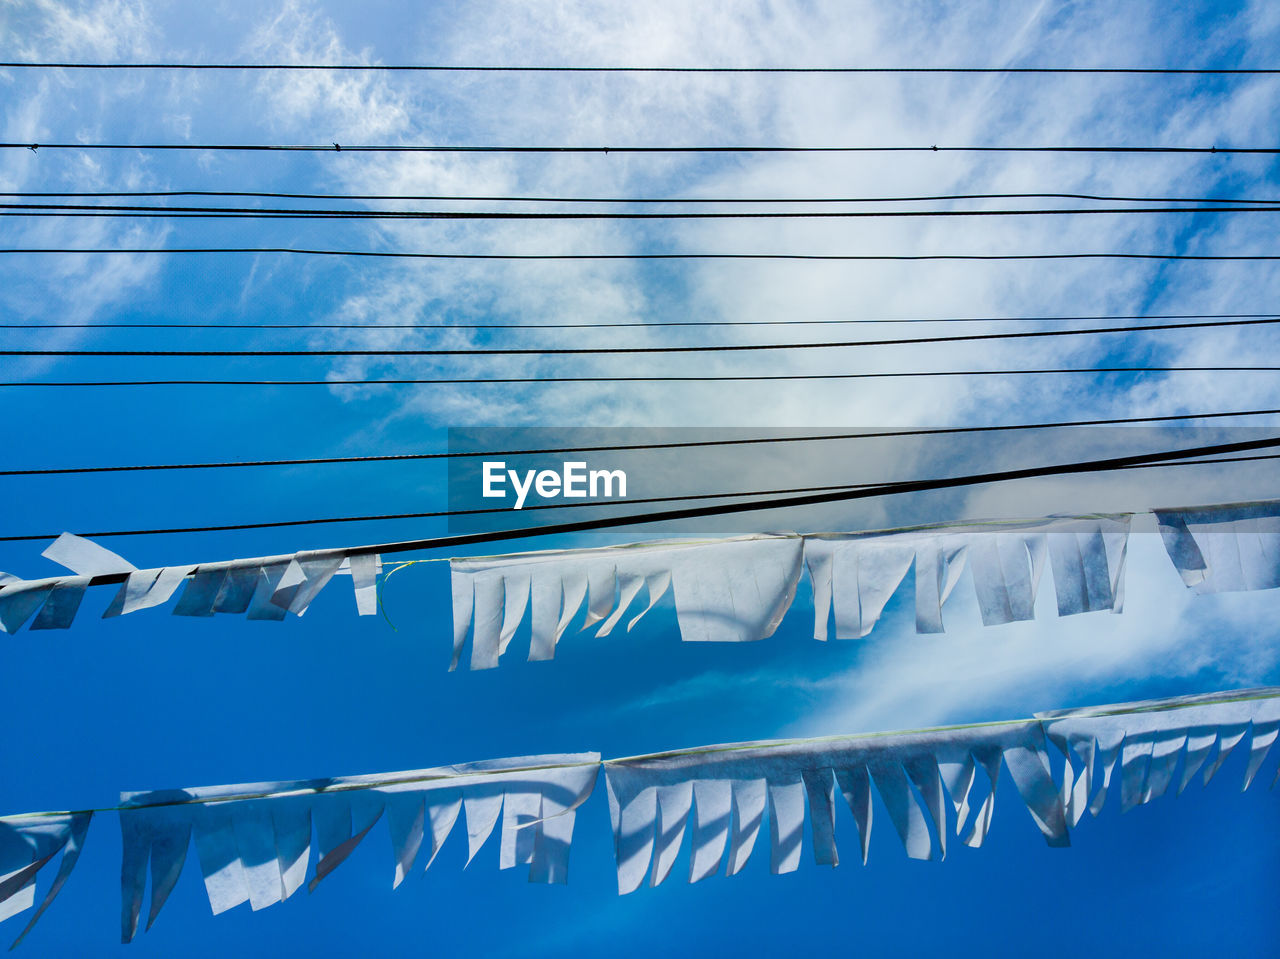 blue, day, no people, nature, low angle view, sky, outdoors, architecture, cable, reflection, pattern, transportation, water, window, mode of transportation, sunlight, drying, hanging, metal, laundry